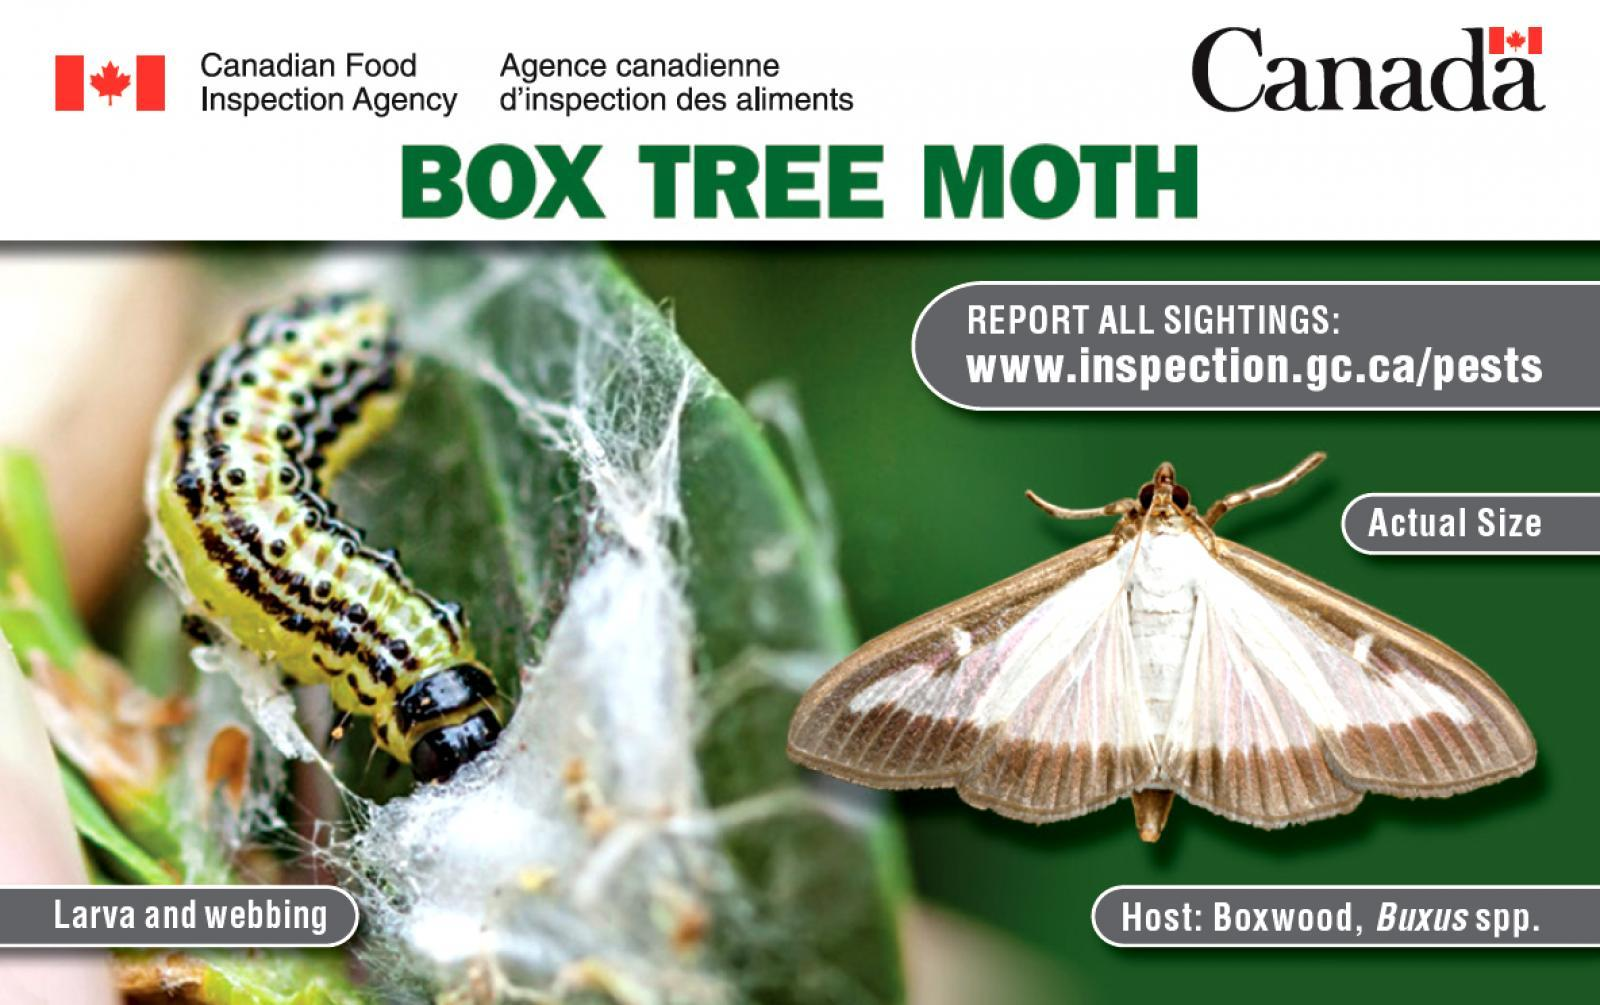 Box tree moth identification card